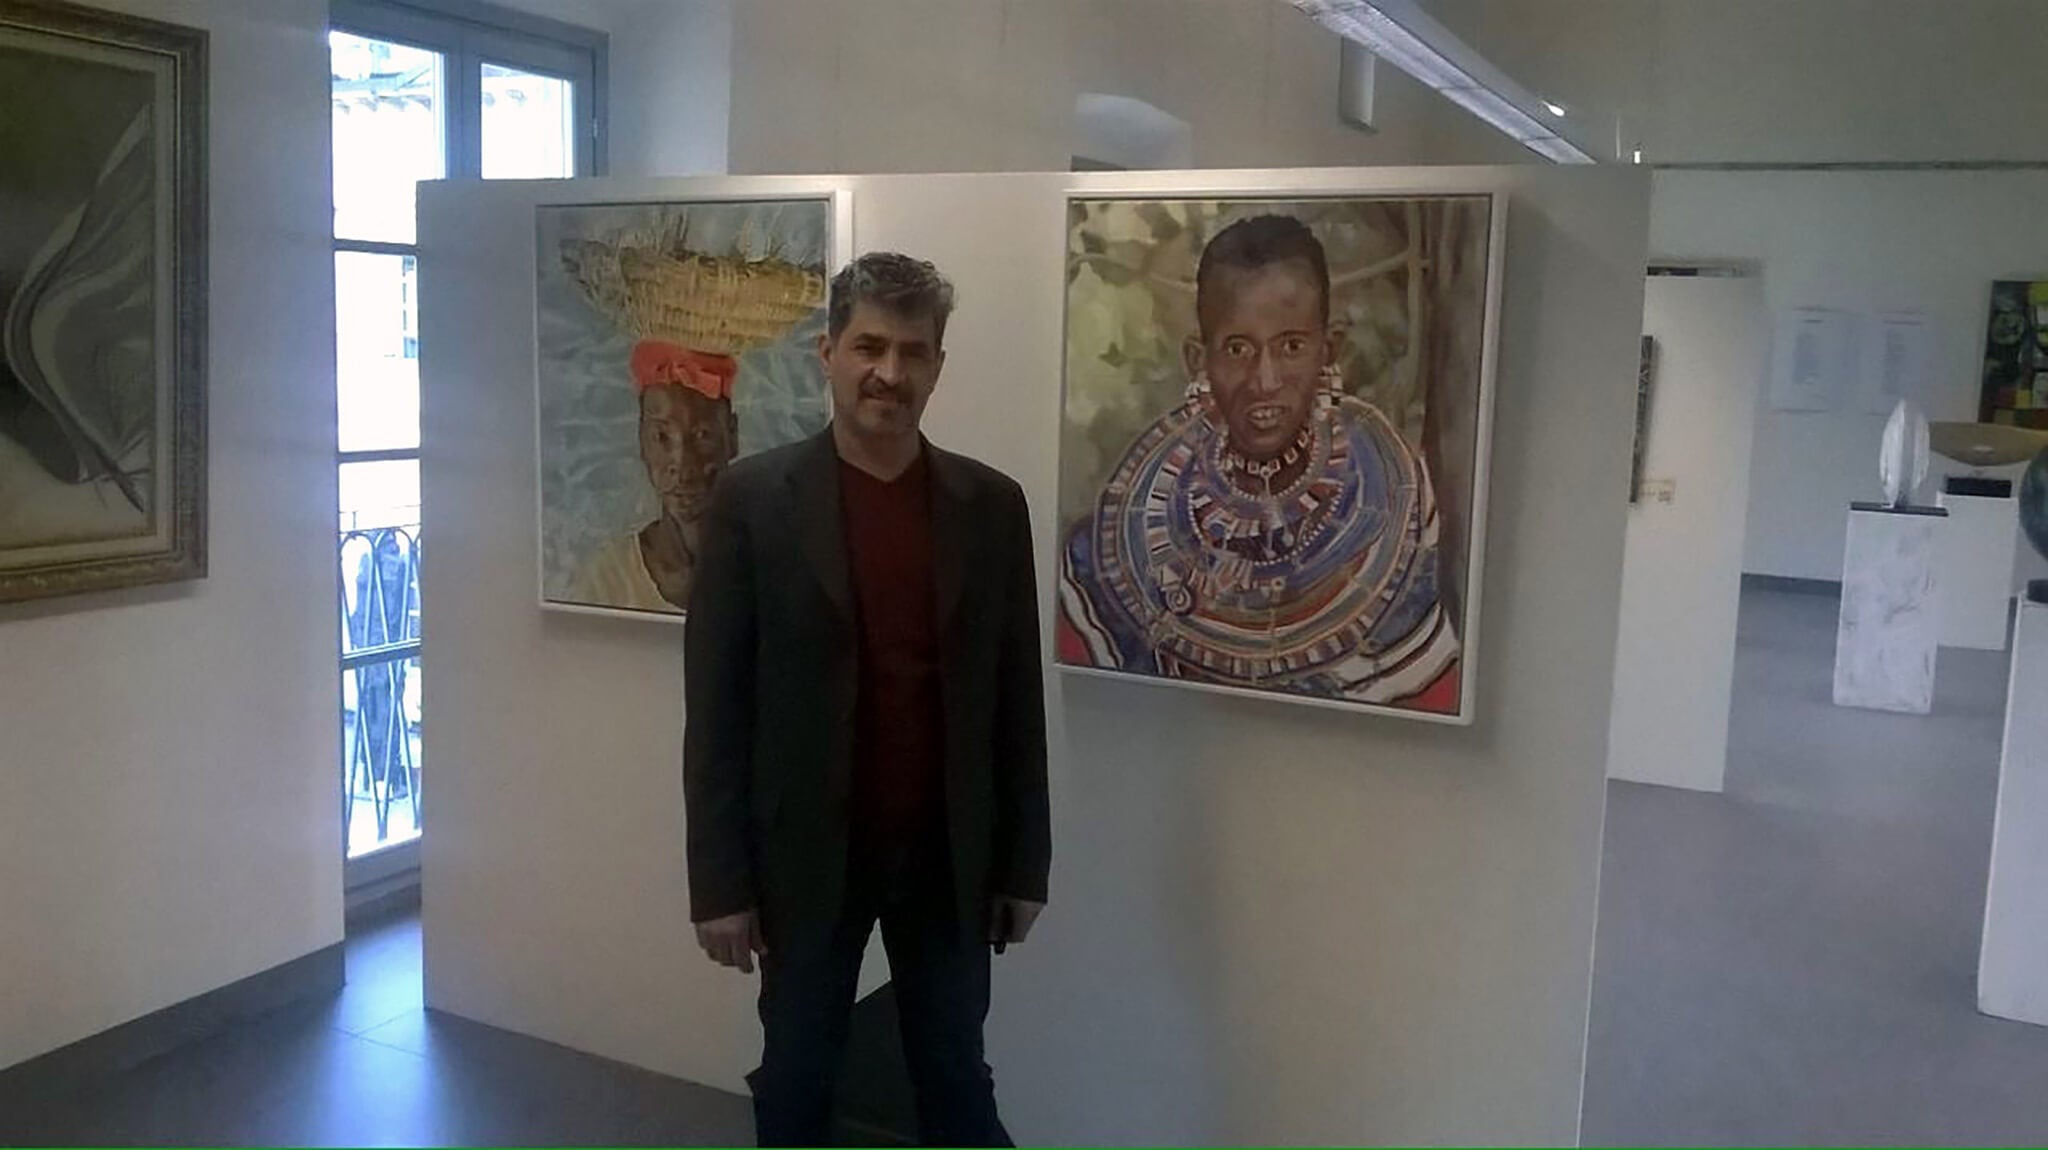 Stella Tooth's oil portraits of The Hod Carrier and Maasai woman at the Milan Expo Arte Senza Confini Soul food with organiser Gamal Meleka.